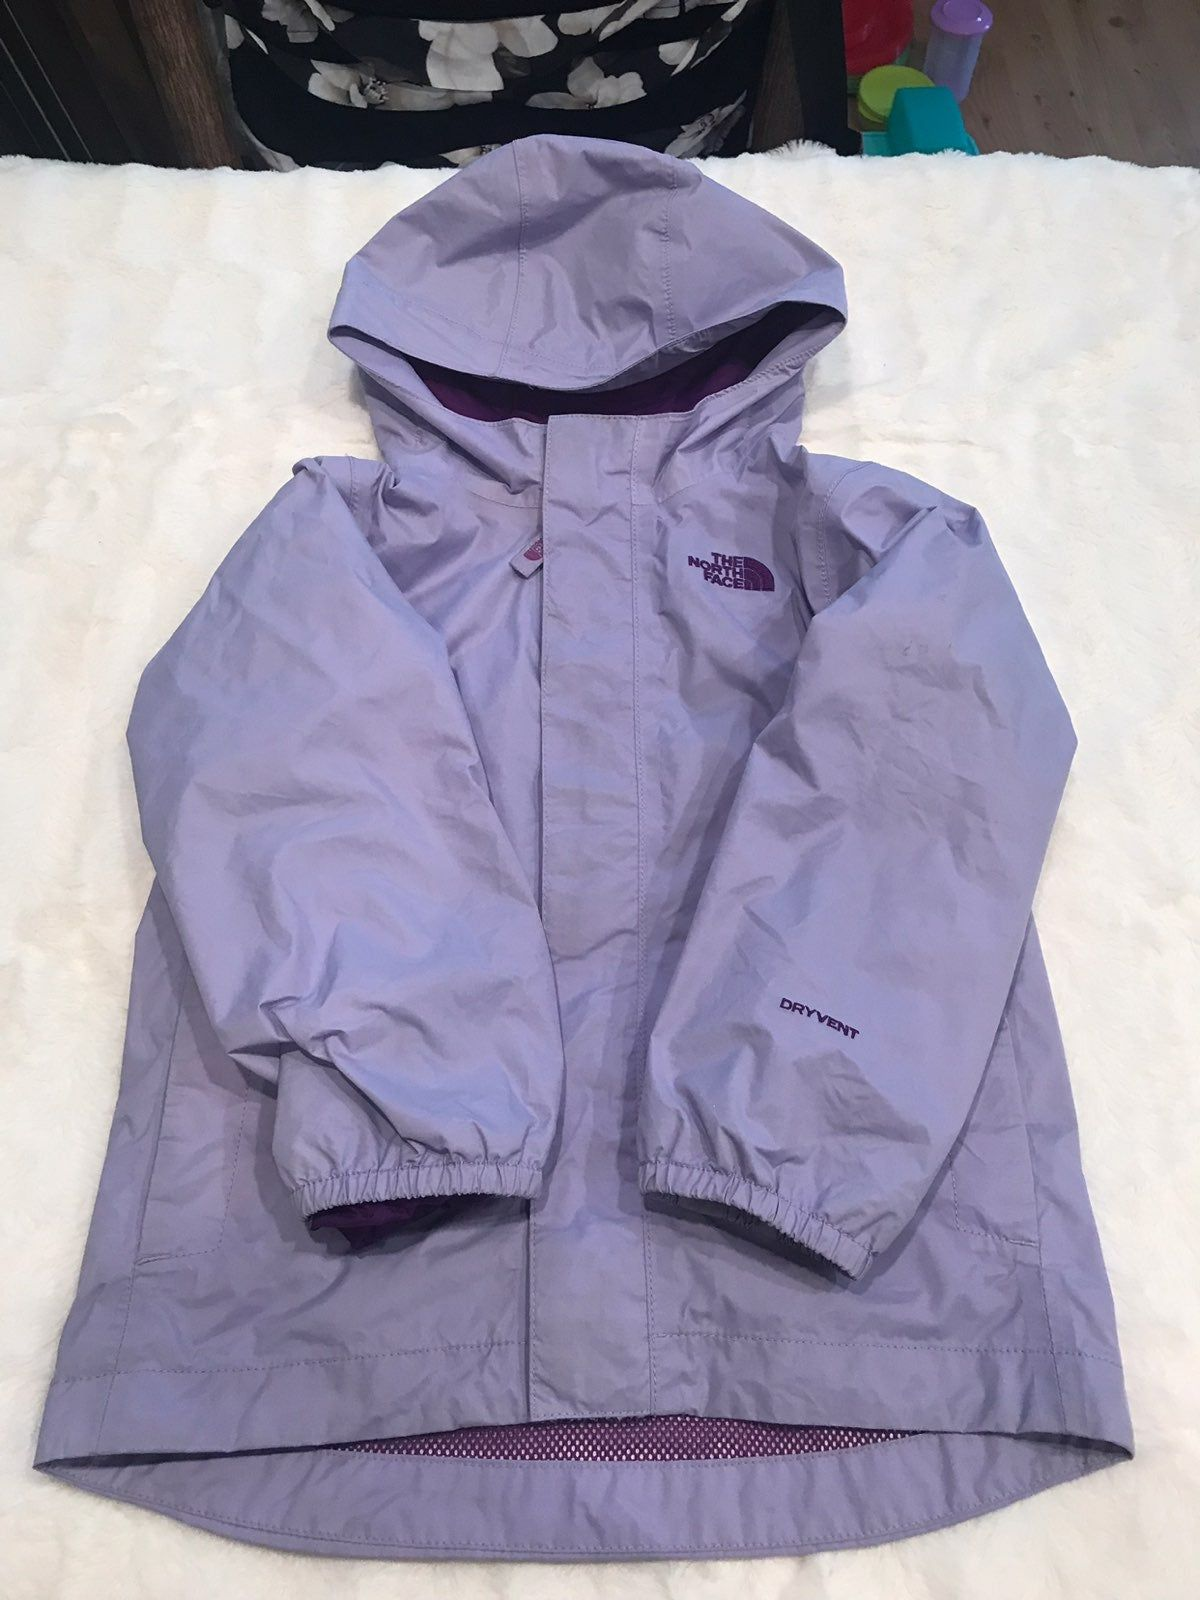 Super Cute Light Purple With Hood Dryvent Series Pet And Smoke Free Home 4t Girls North Face Jacket North Face Girls North Face Jacket [ 1600 x 1200 Pixel ]